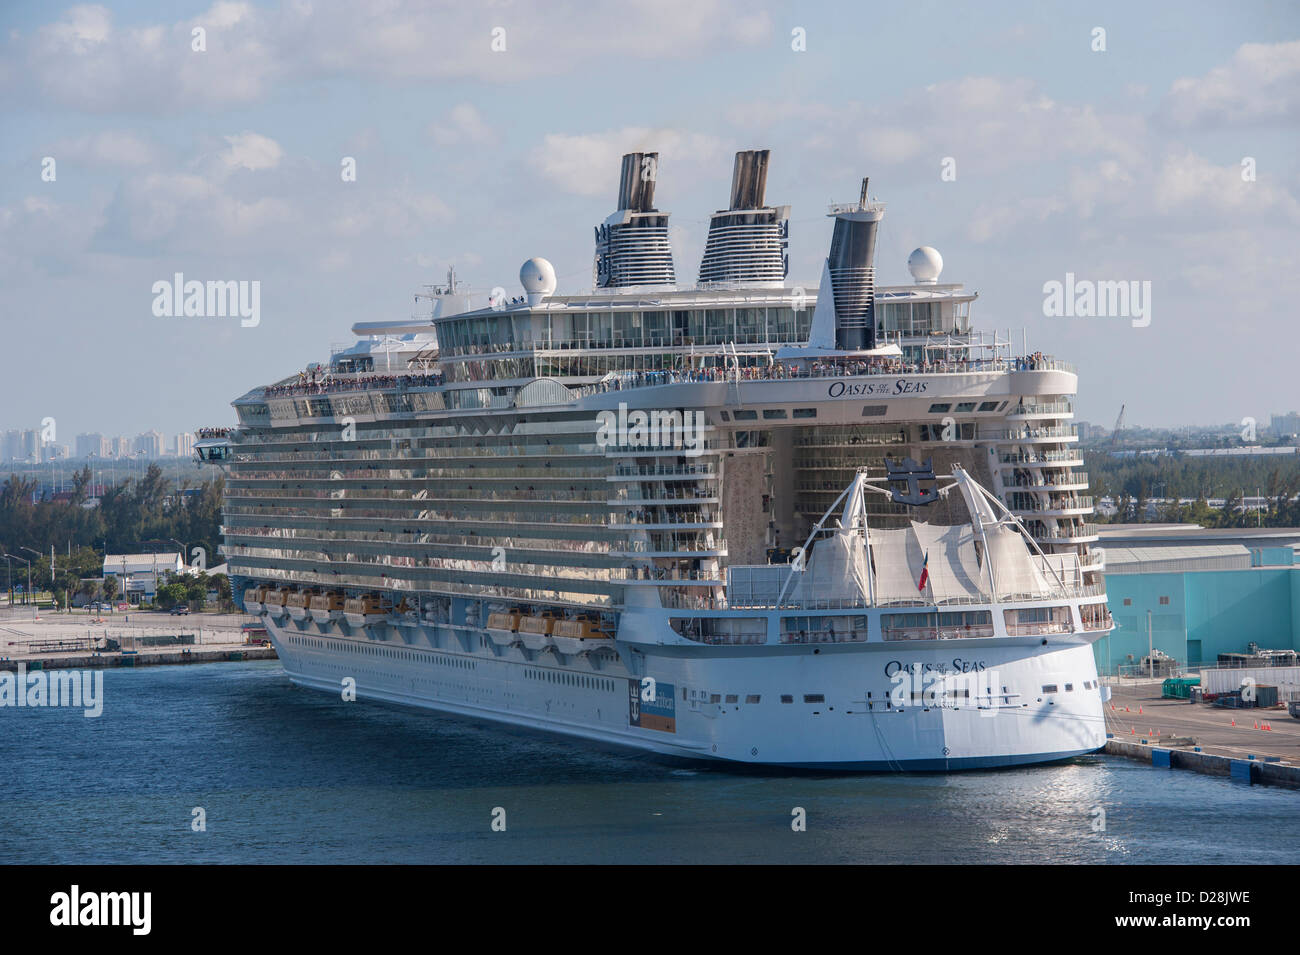 Fort Lauderdale Port Everglades Florida USA Oasis Of The Seas Stock Photo